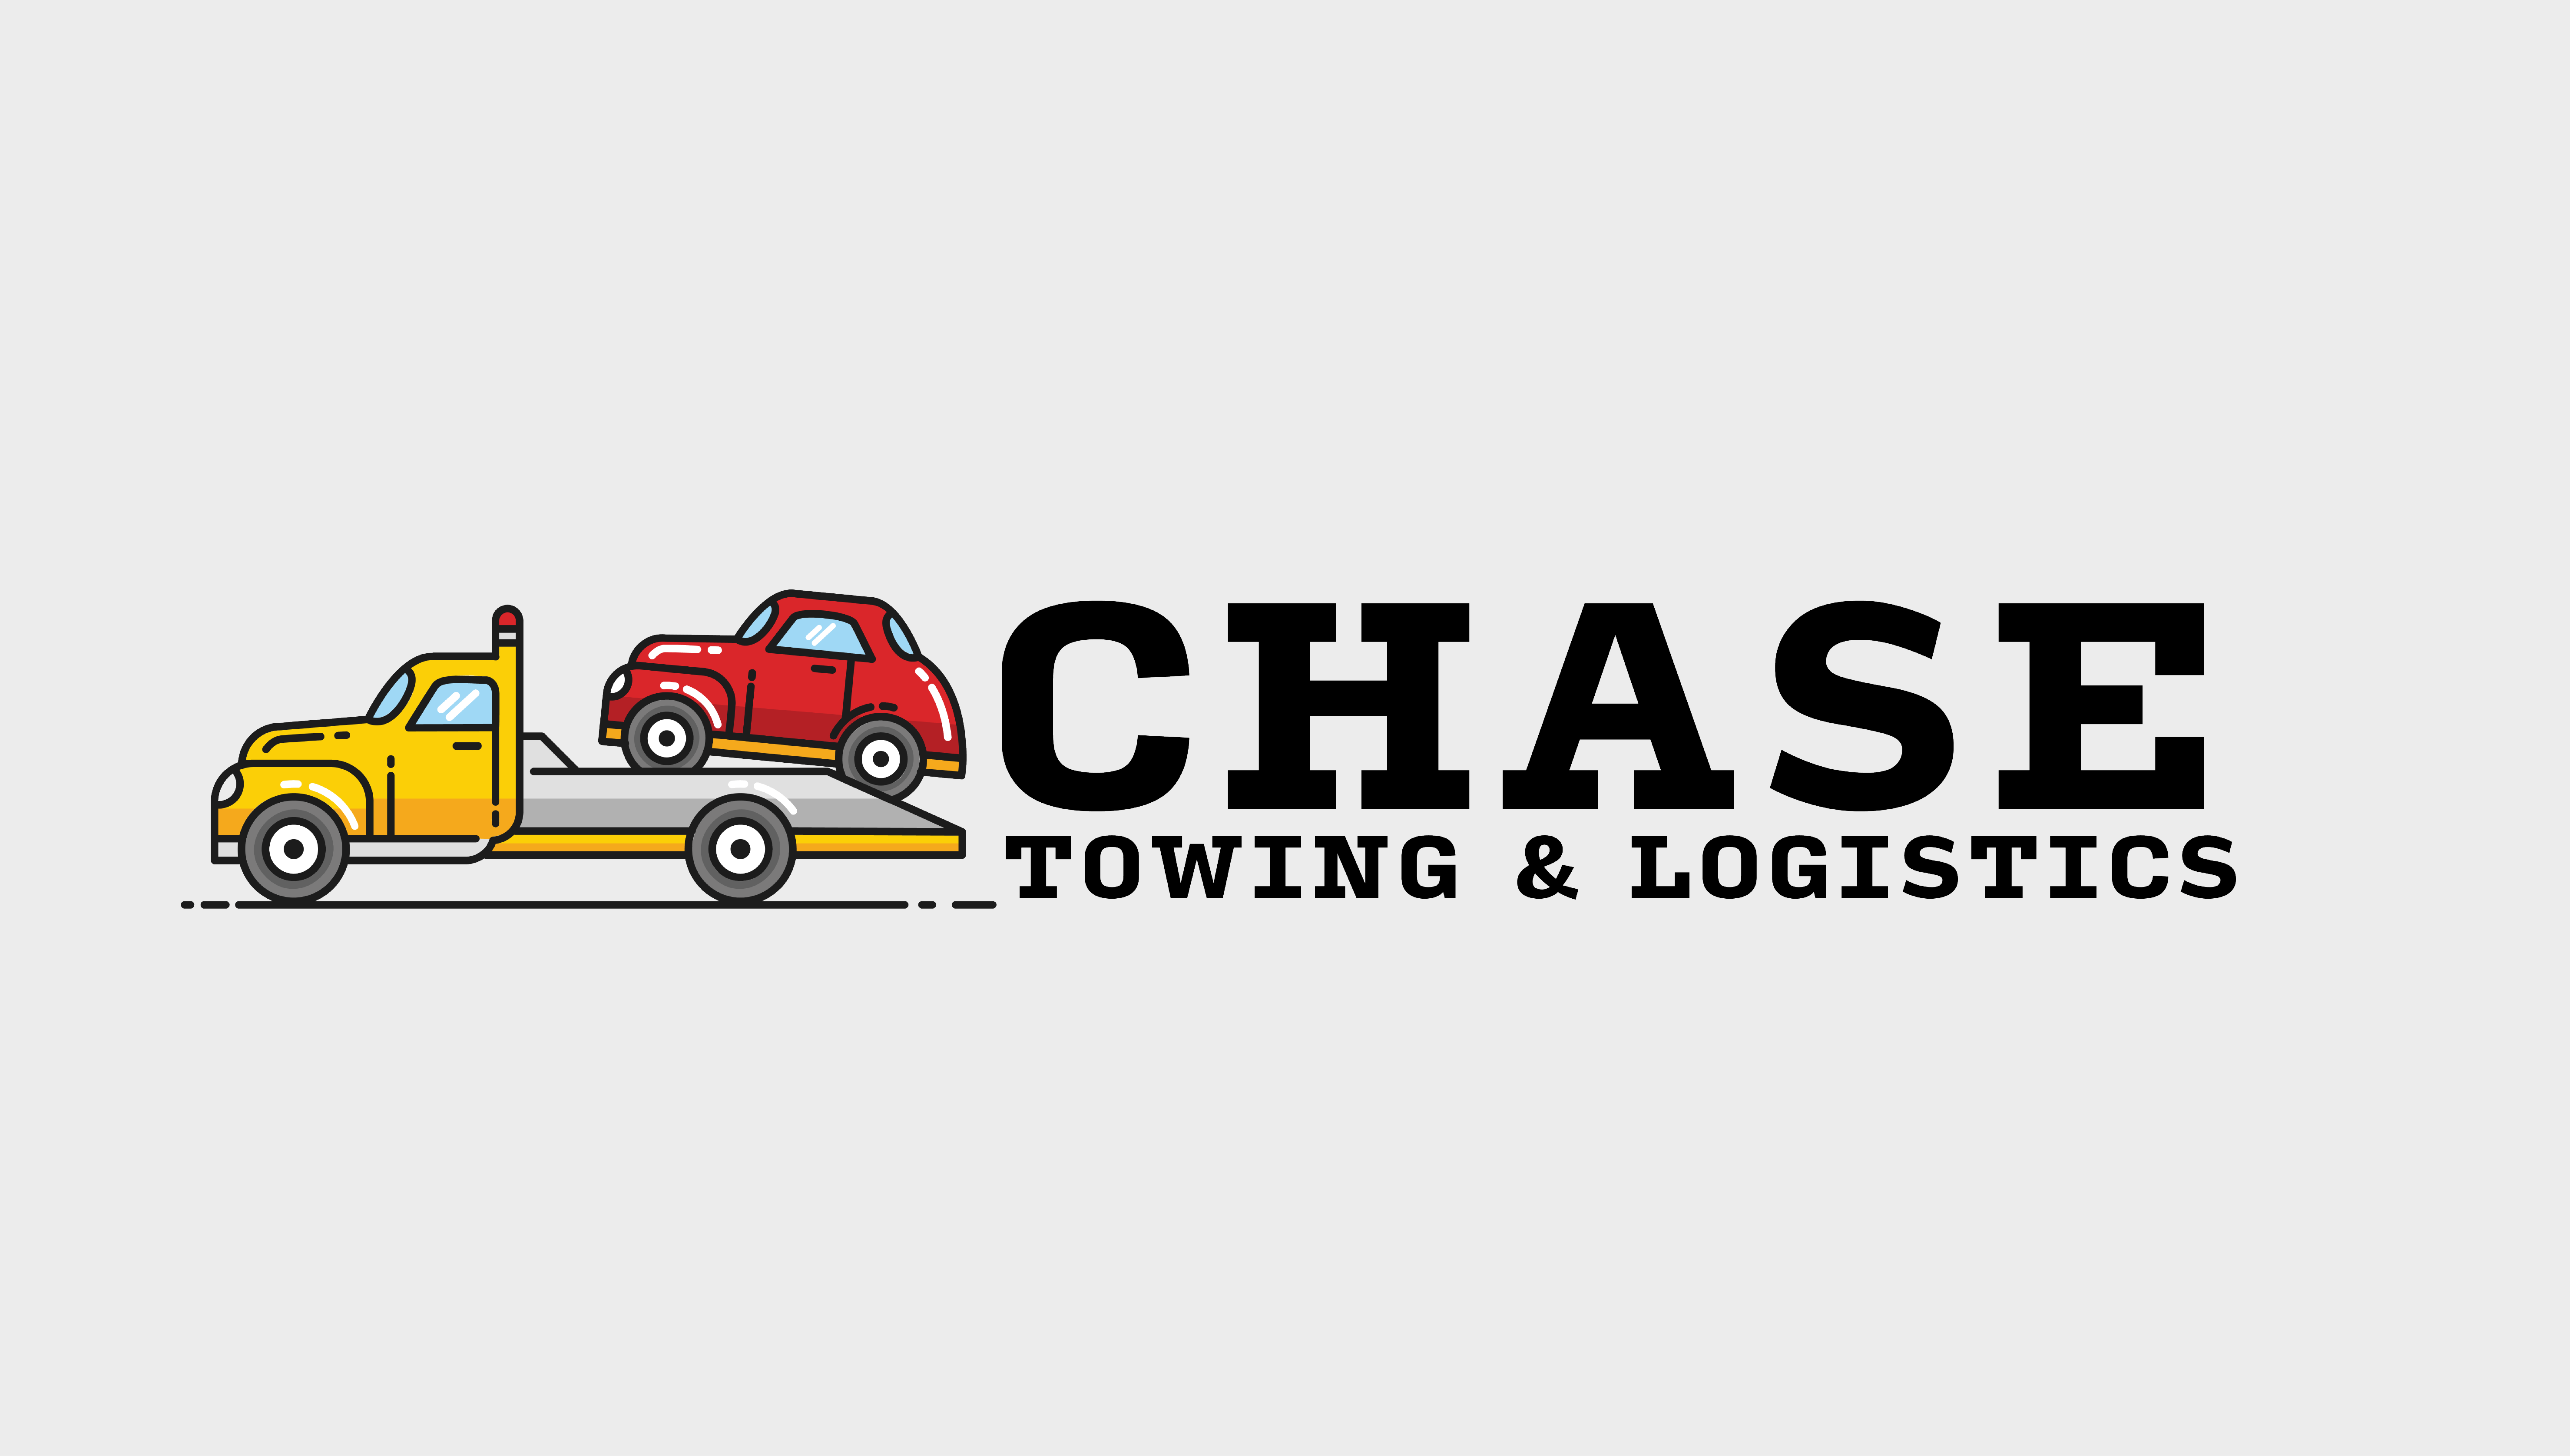 Chase Towing & Logistics